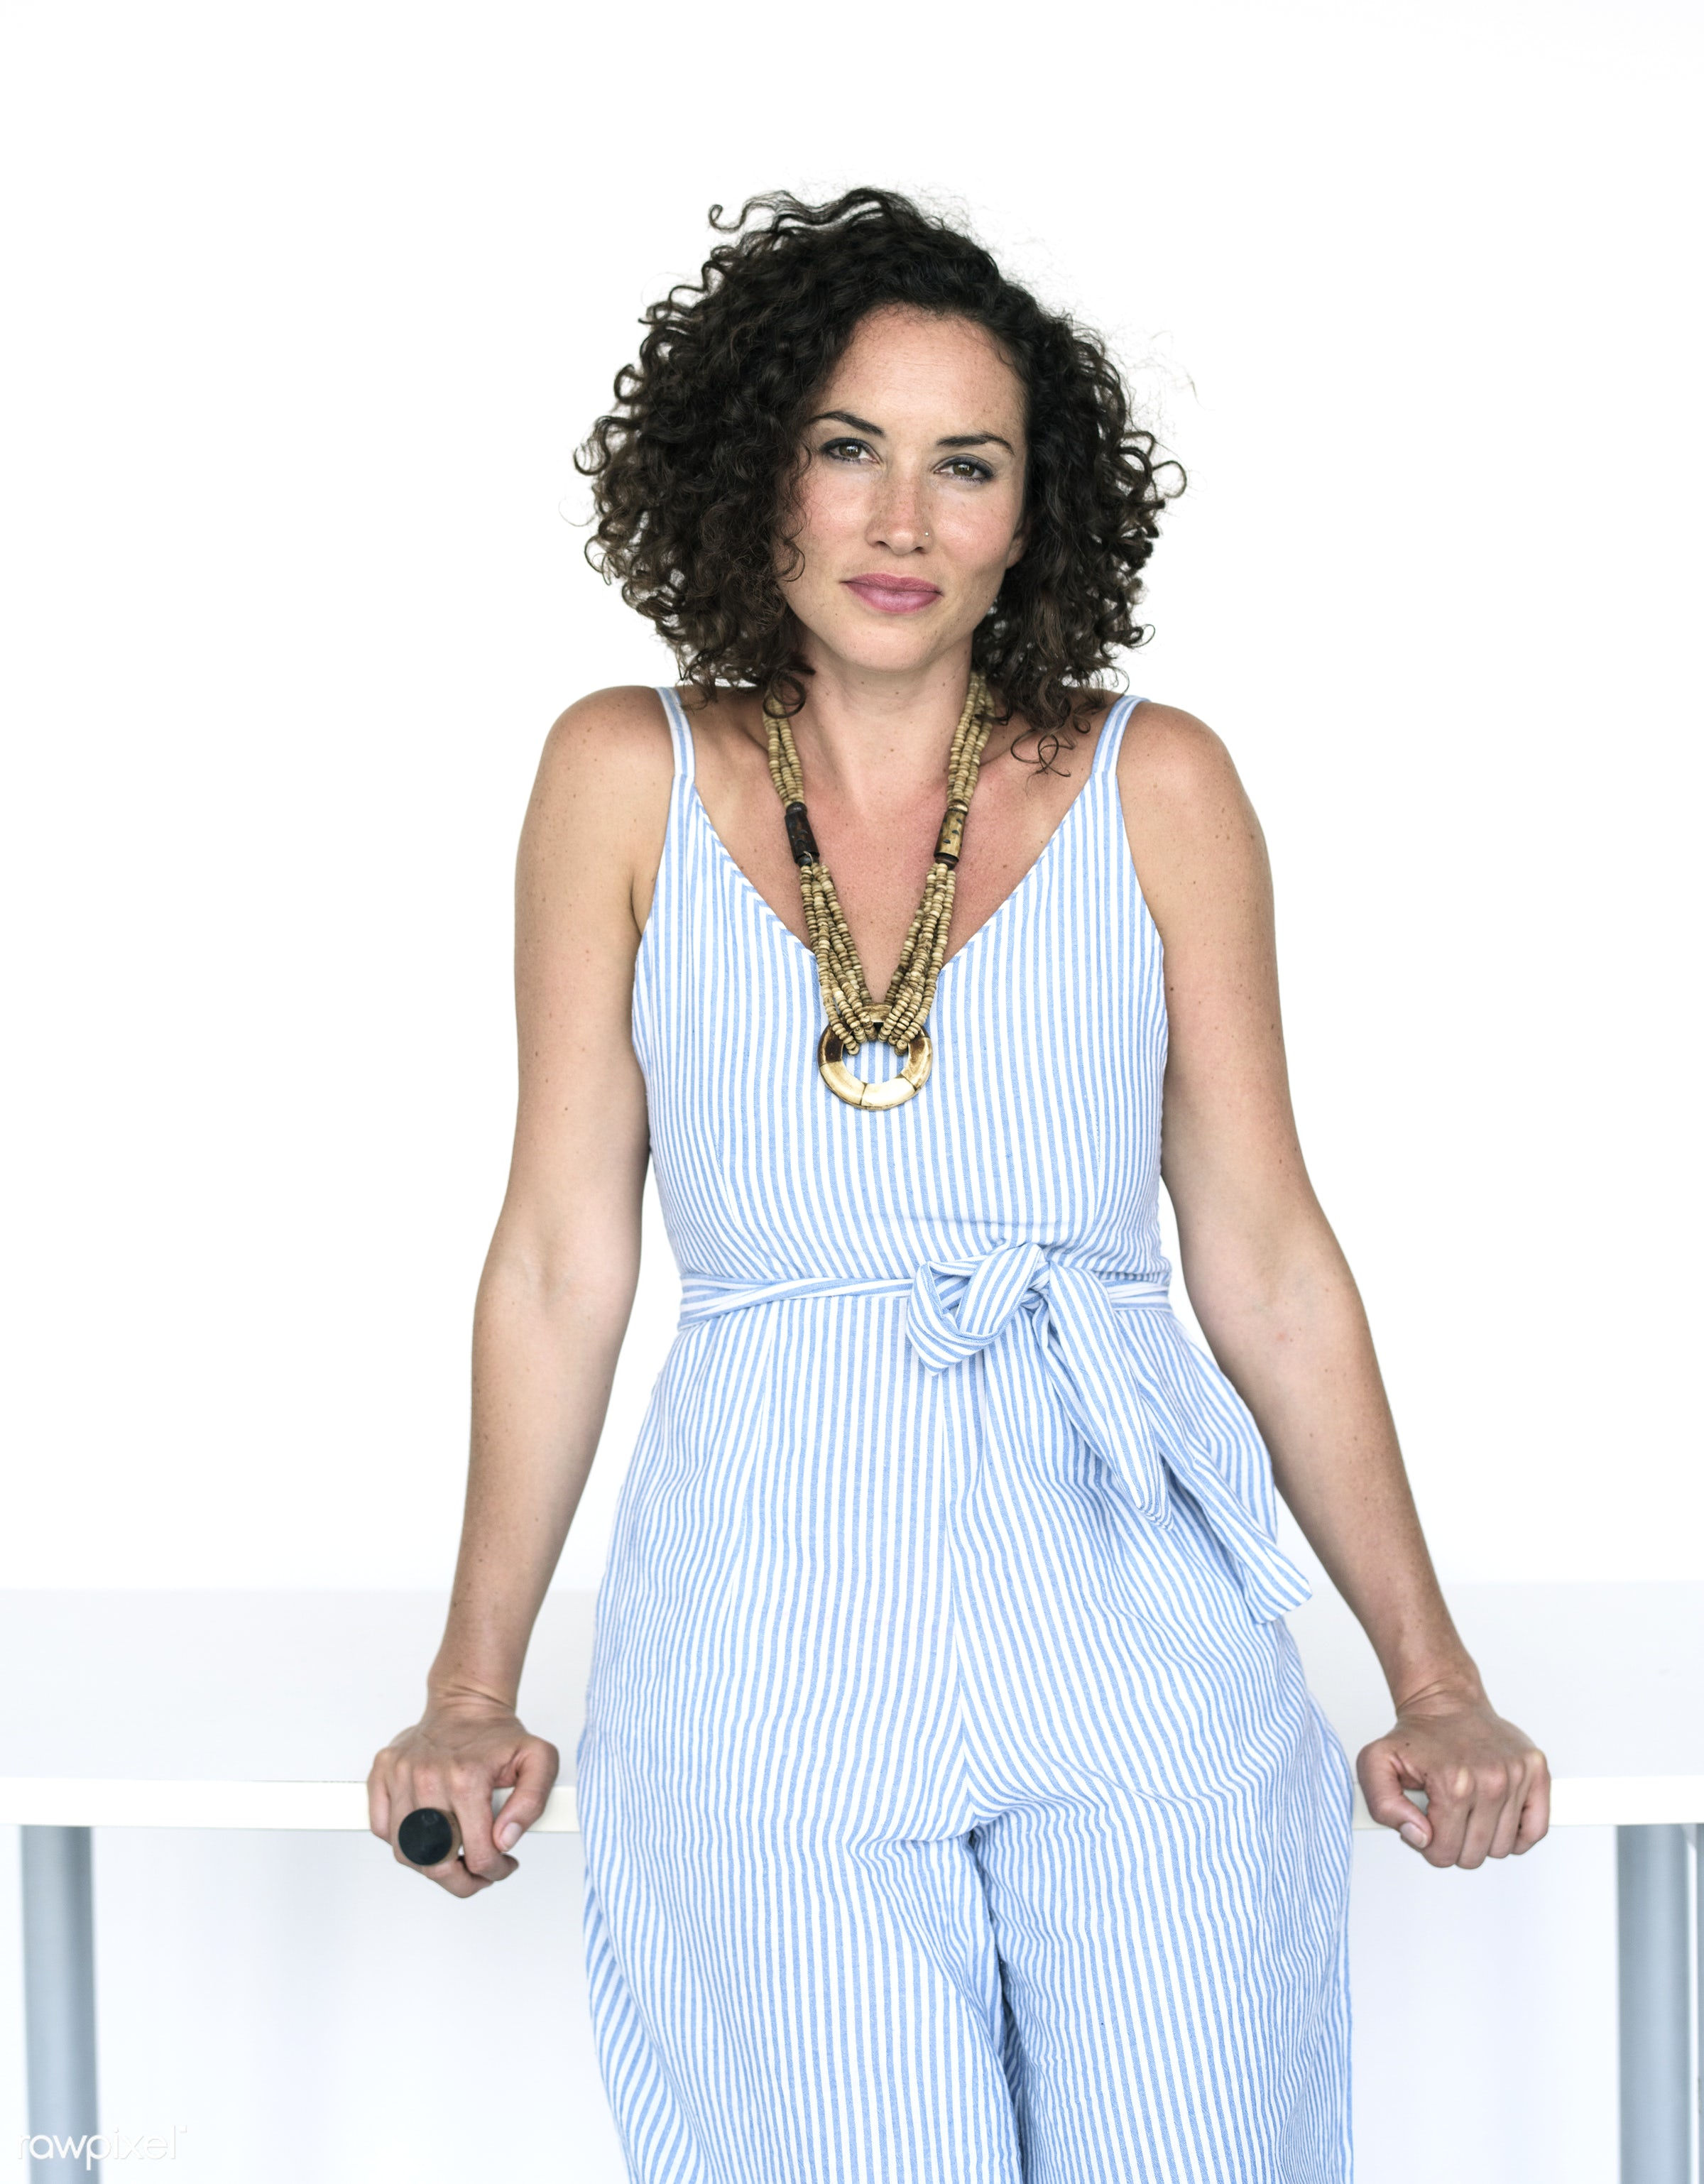 expression, studio, fashion, model, person, fashionista, jumpsuit, isolated on white, trendy, race, people, caucasian, style...